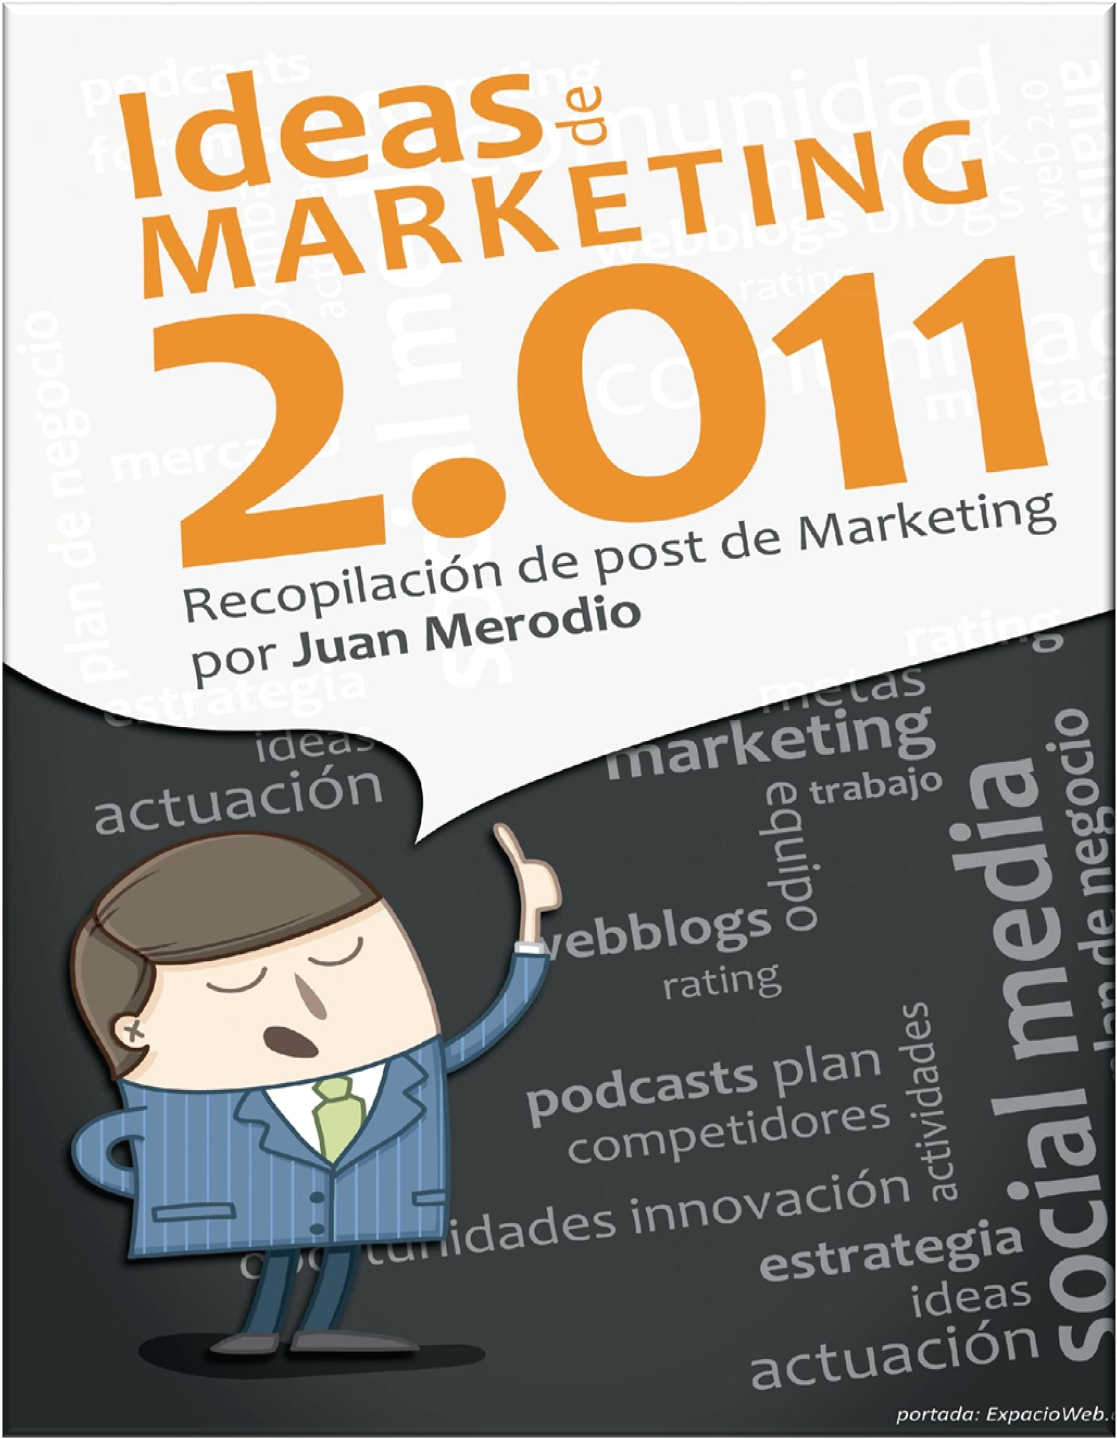 Ideas de Marketing 2011recopilación de post de Marketing por Juan Merodio